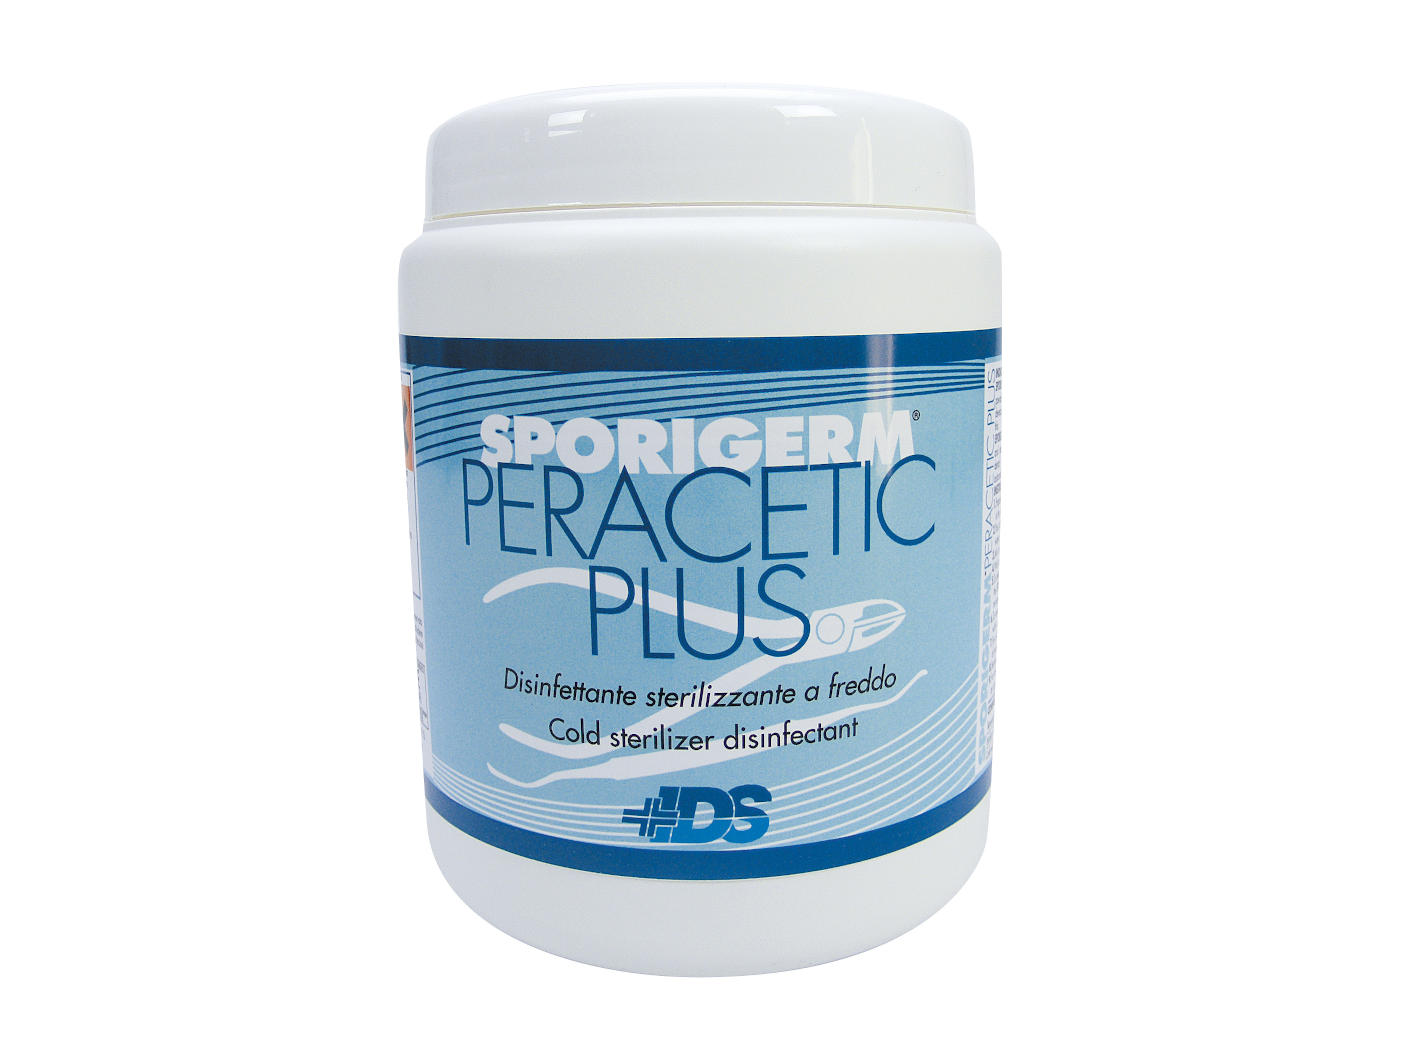 SPORIGERM PERACETIC PLUS